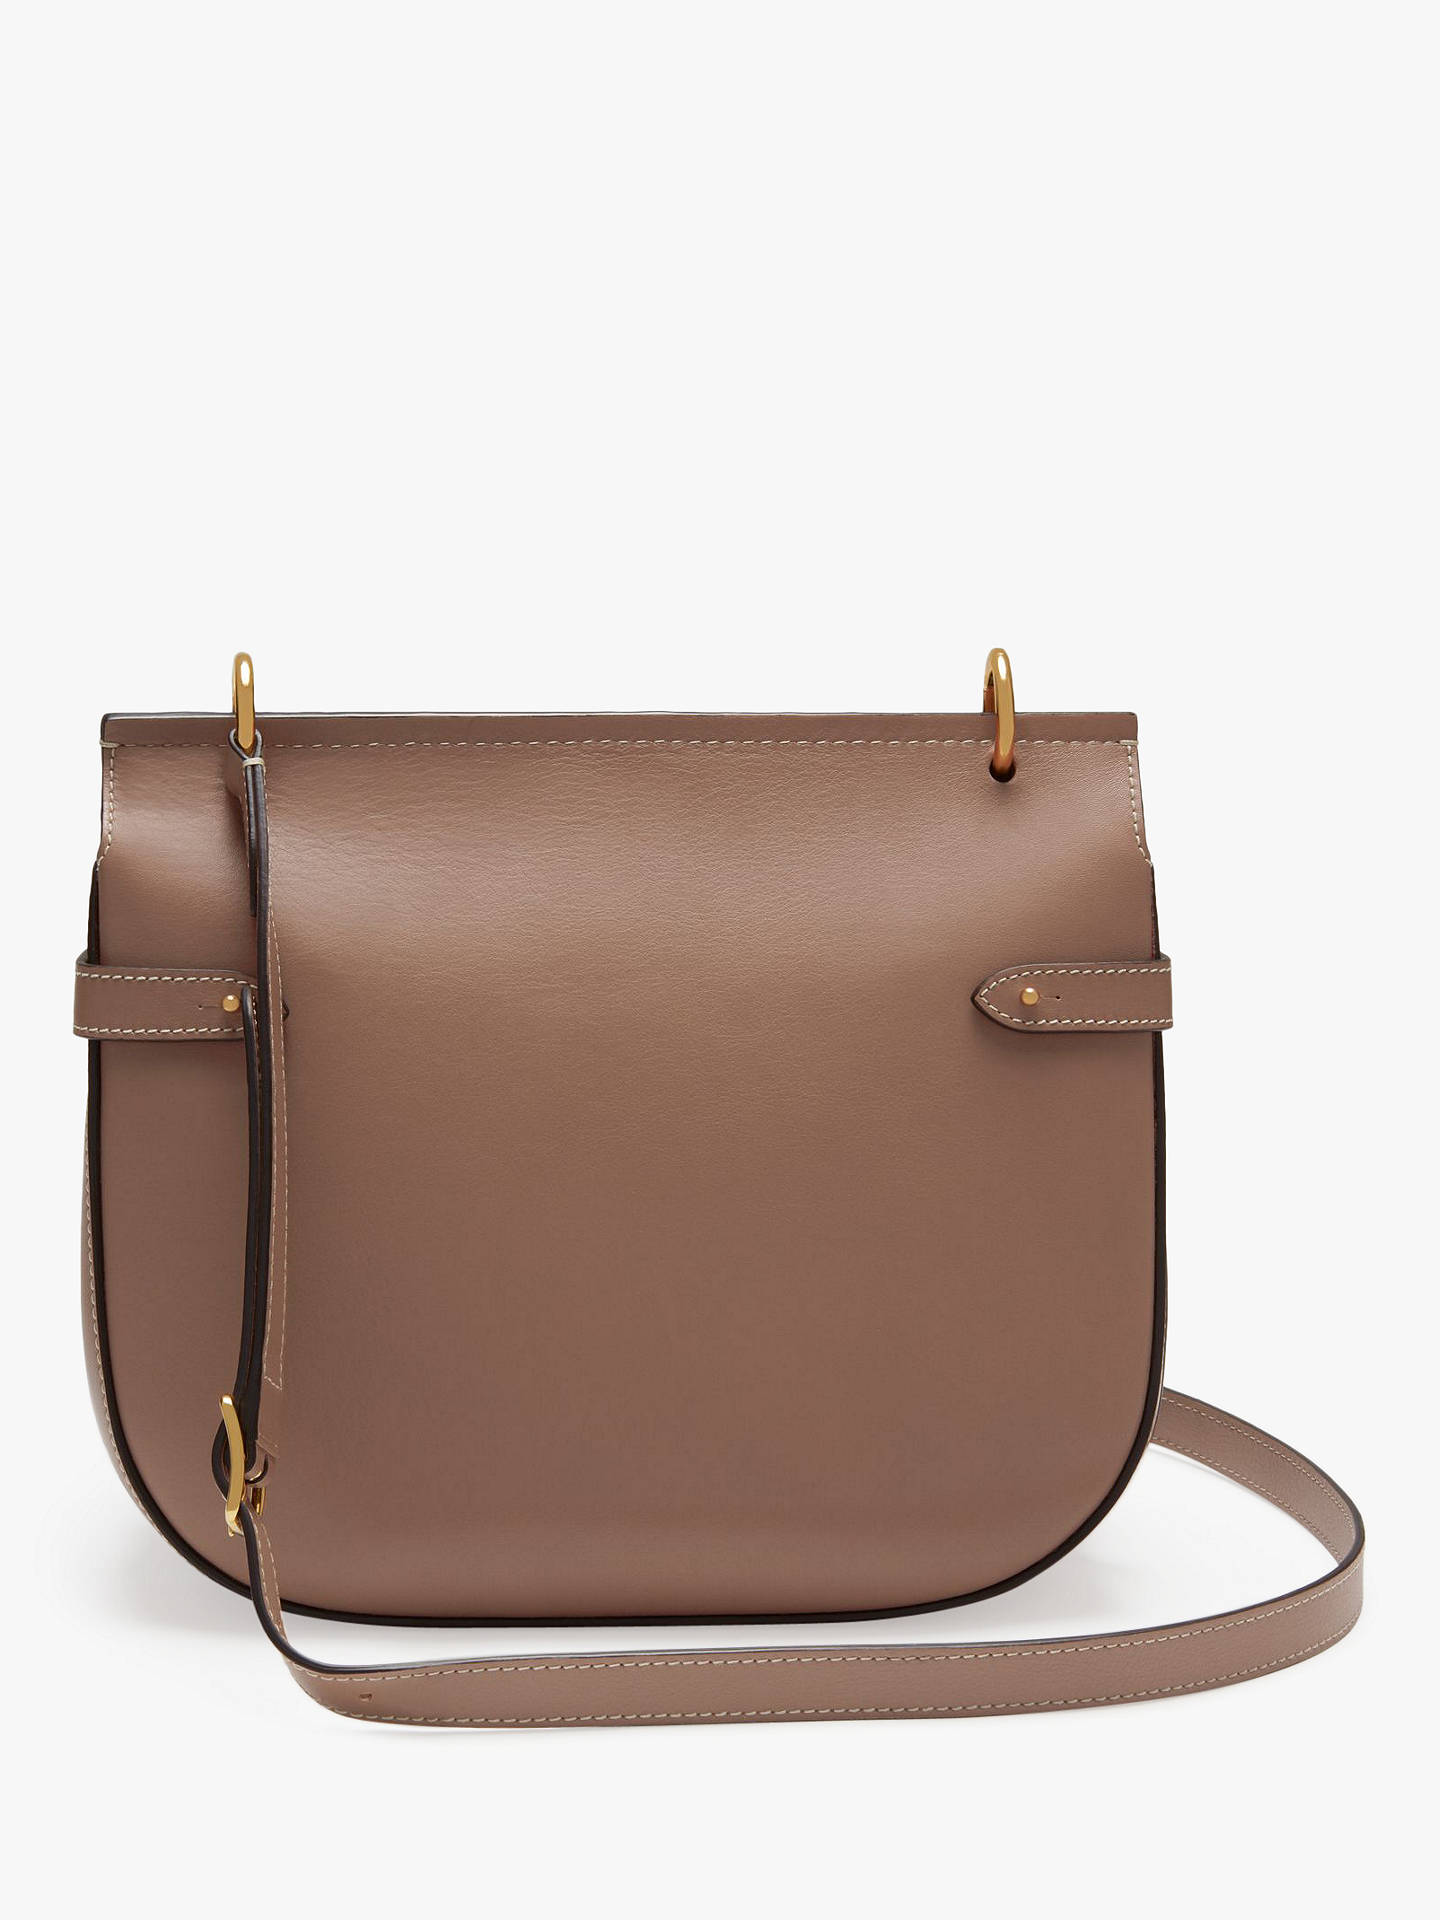 9a430c27b4dcf Mulberry Amberley Silky Calf Leather Satchel Bag at John Lewis ...